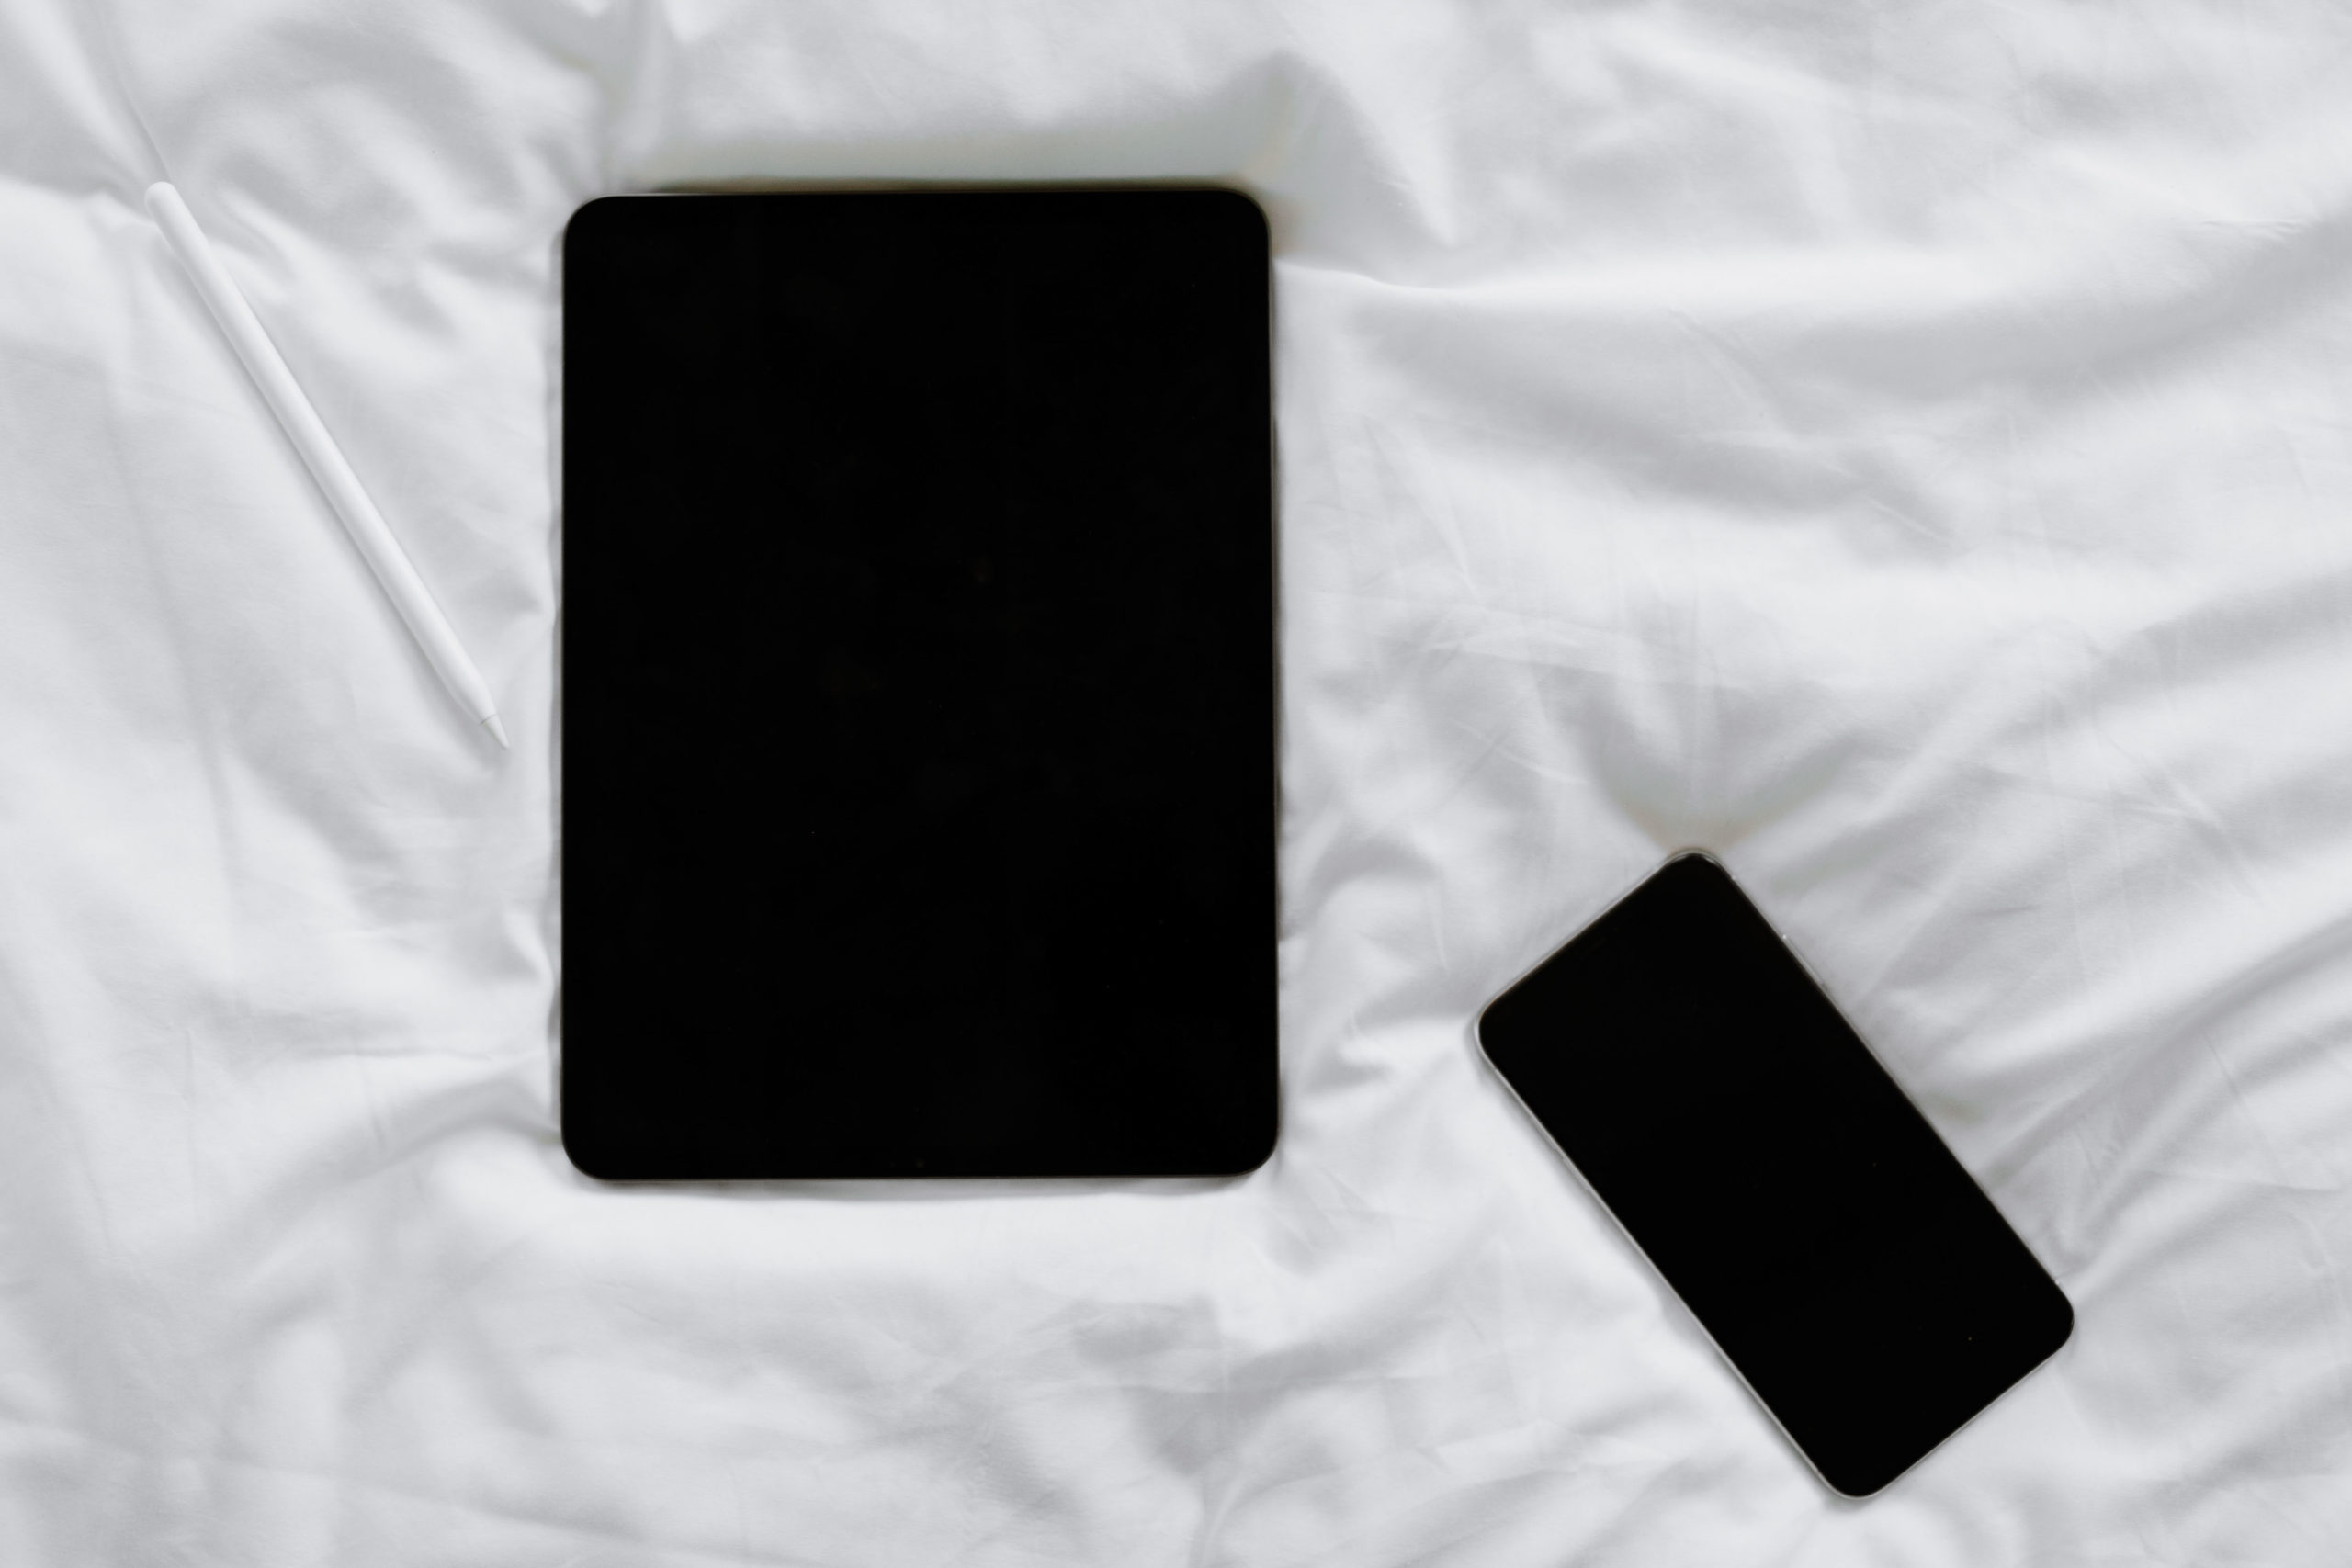 An iPad and iPhone laying on a white comforter.